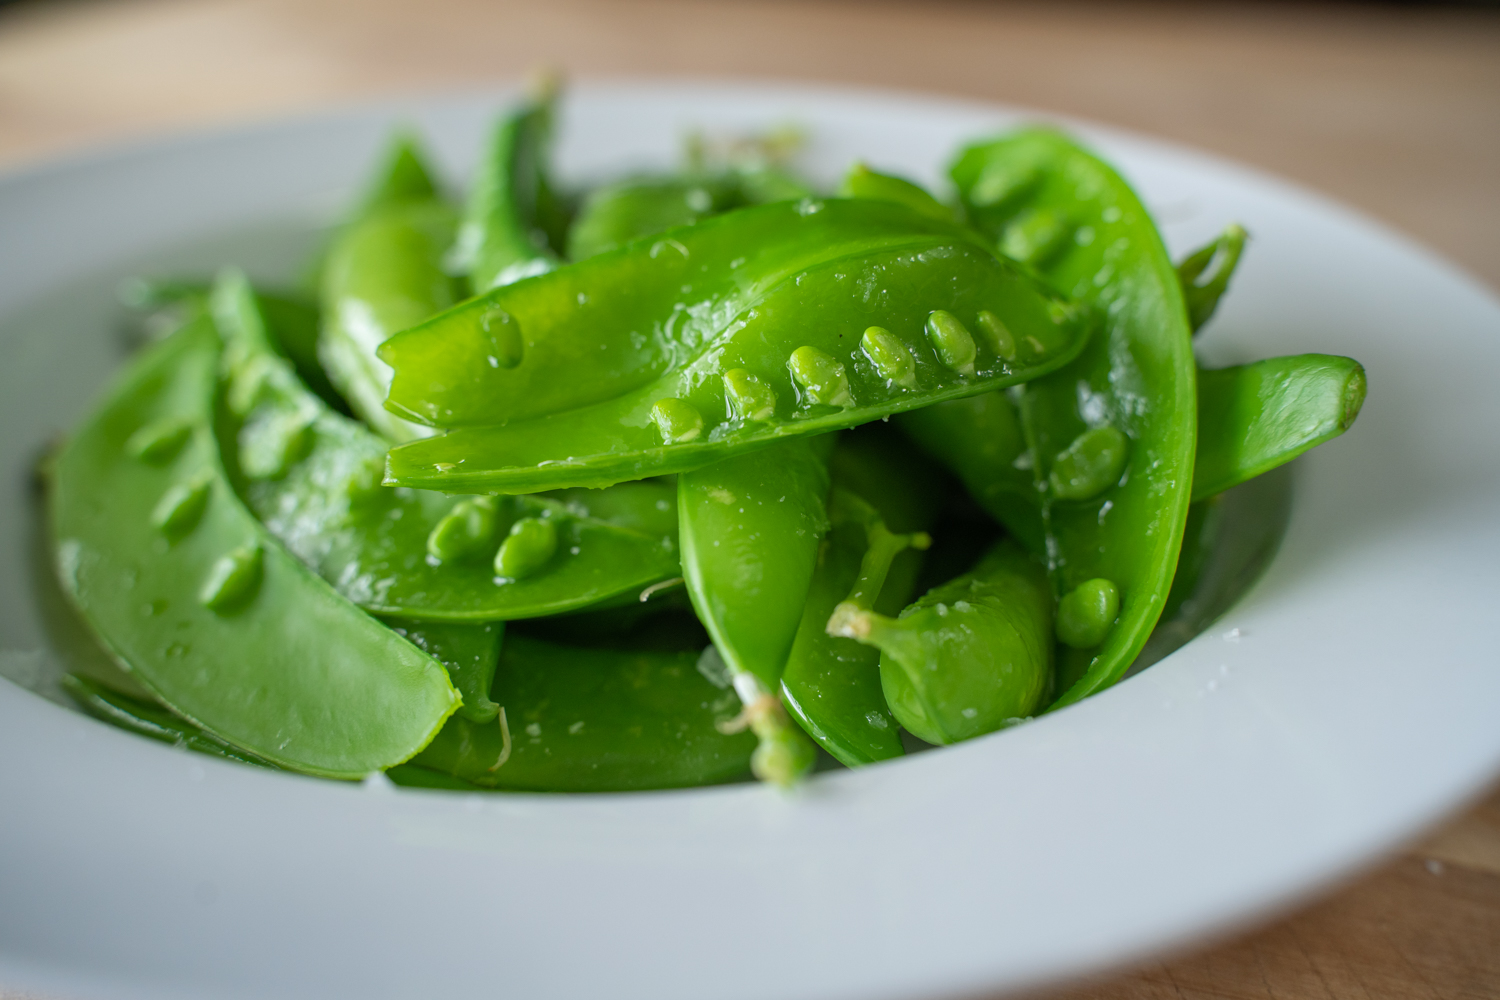 Prepared spring peas in a bowl.